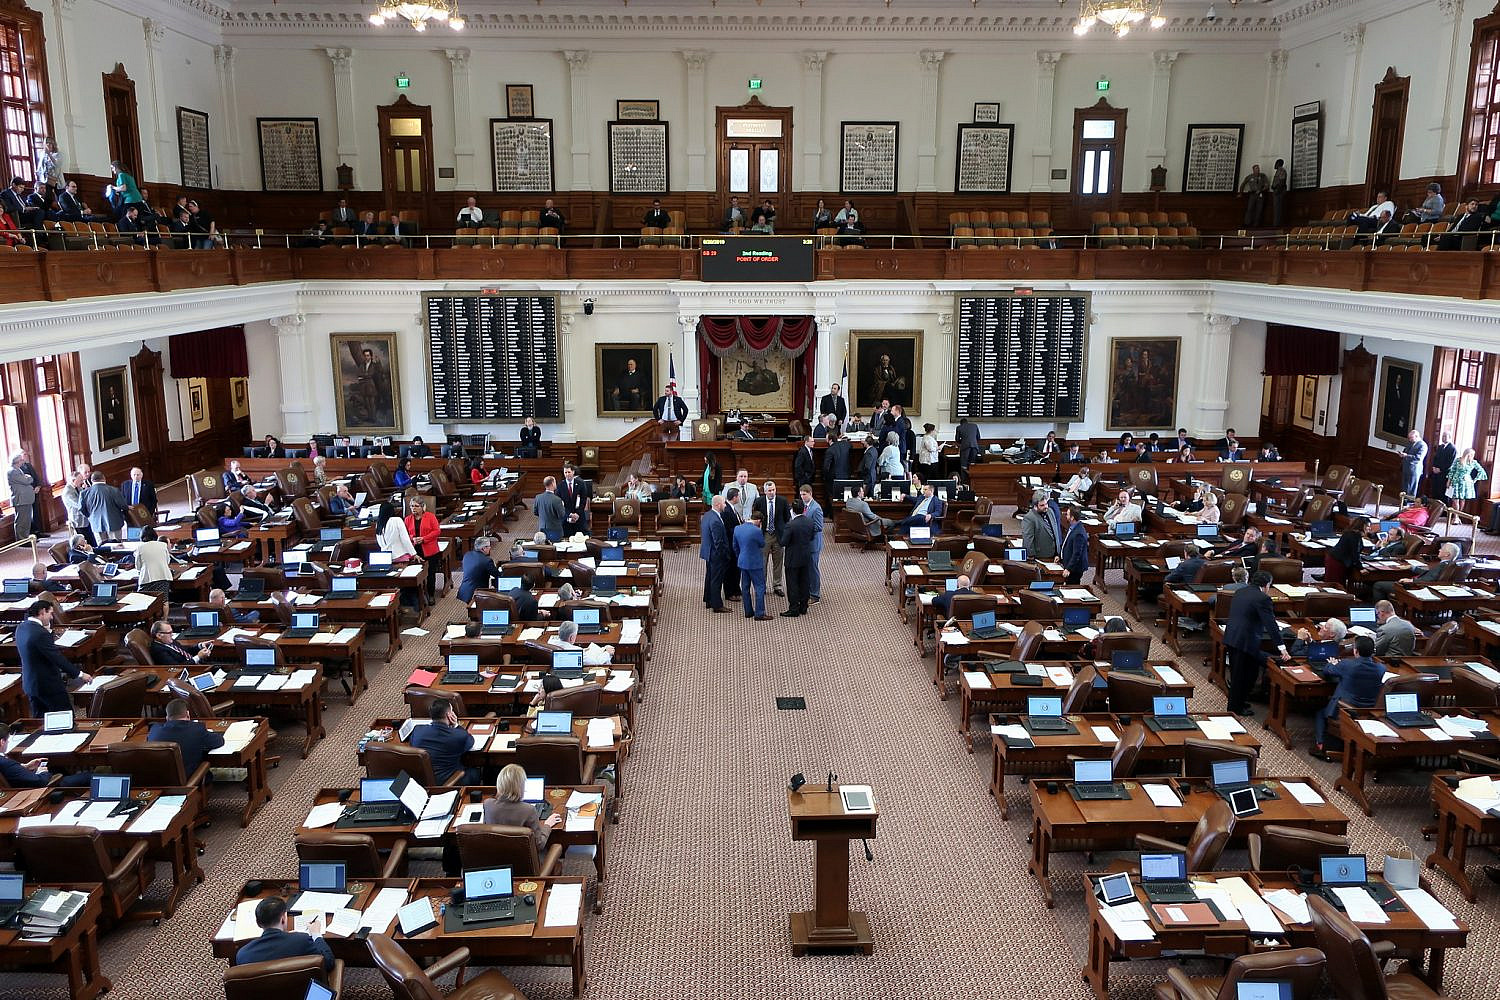 The Senate Chamber in the Texas State Capitol, Austin, Texas. (Wally Gobetz/Flickr/CC BY-NC-ND 2.0)